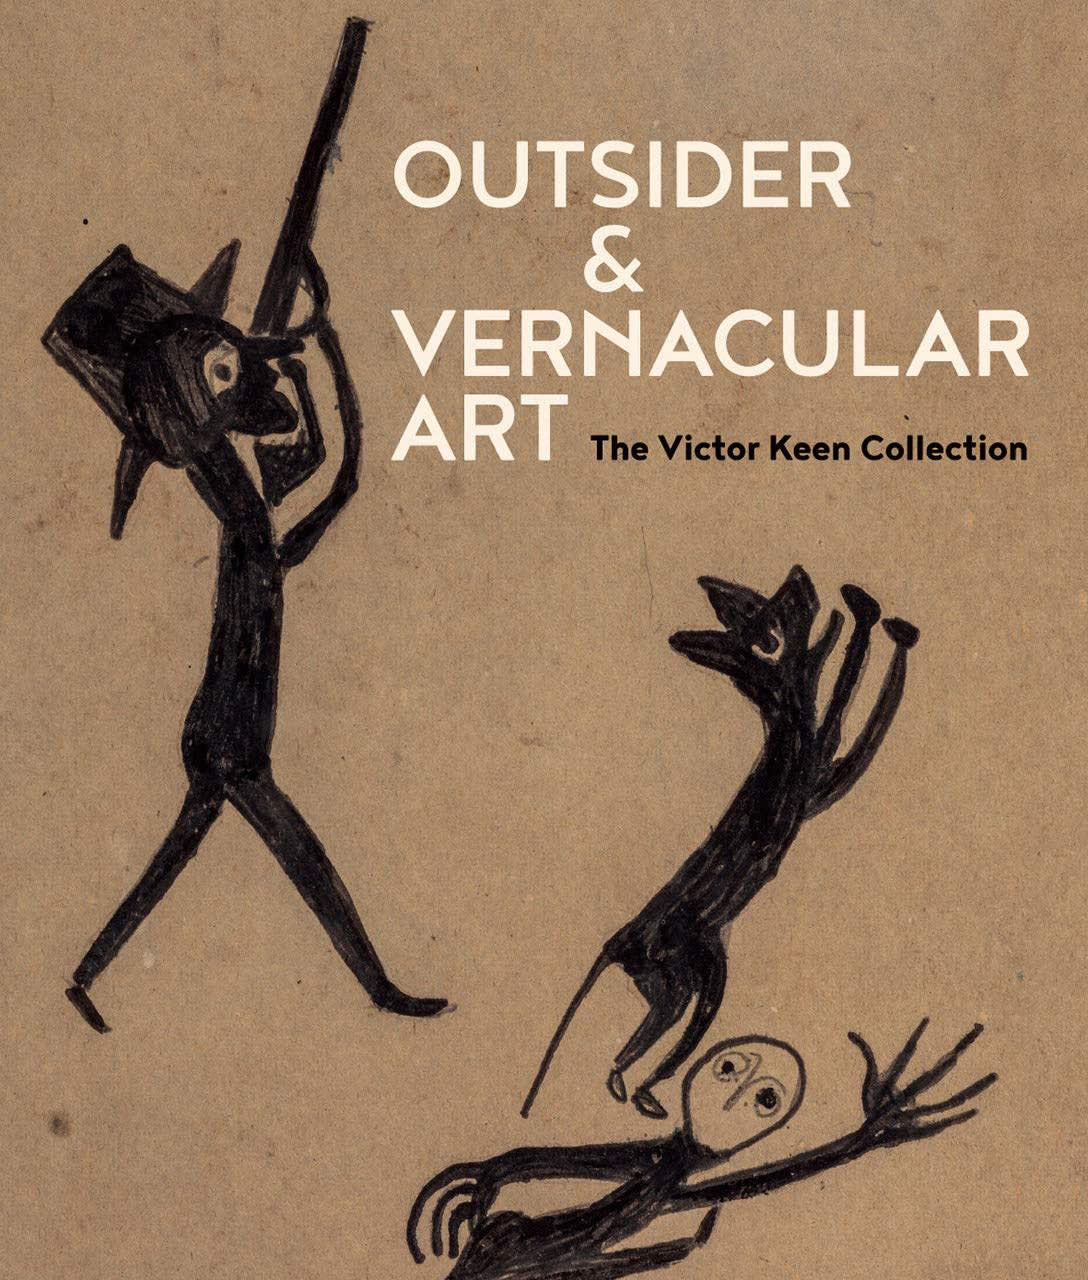 Outsider & Vernacular Art, The Victor Keen Collection